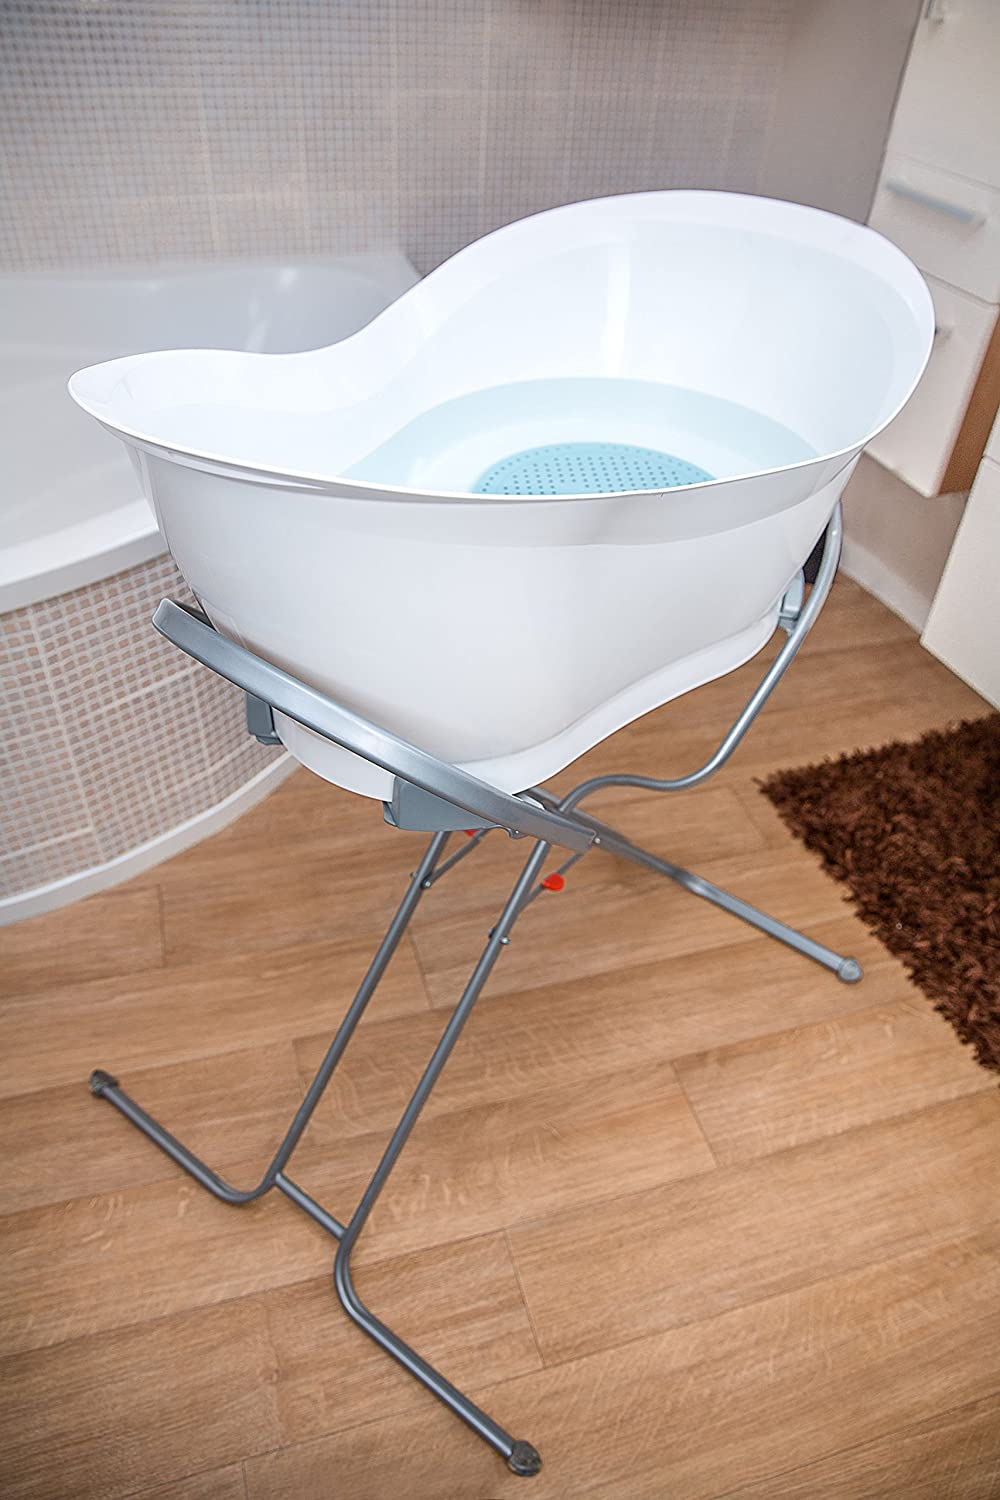 Babymoov Aquanest Bathstand and Draining Pipe: Amazon.co.uk: Baby